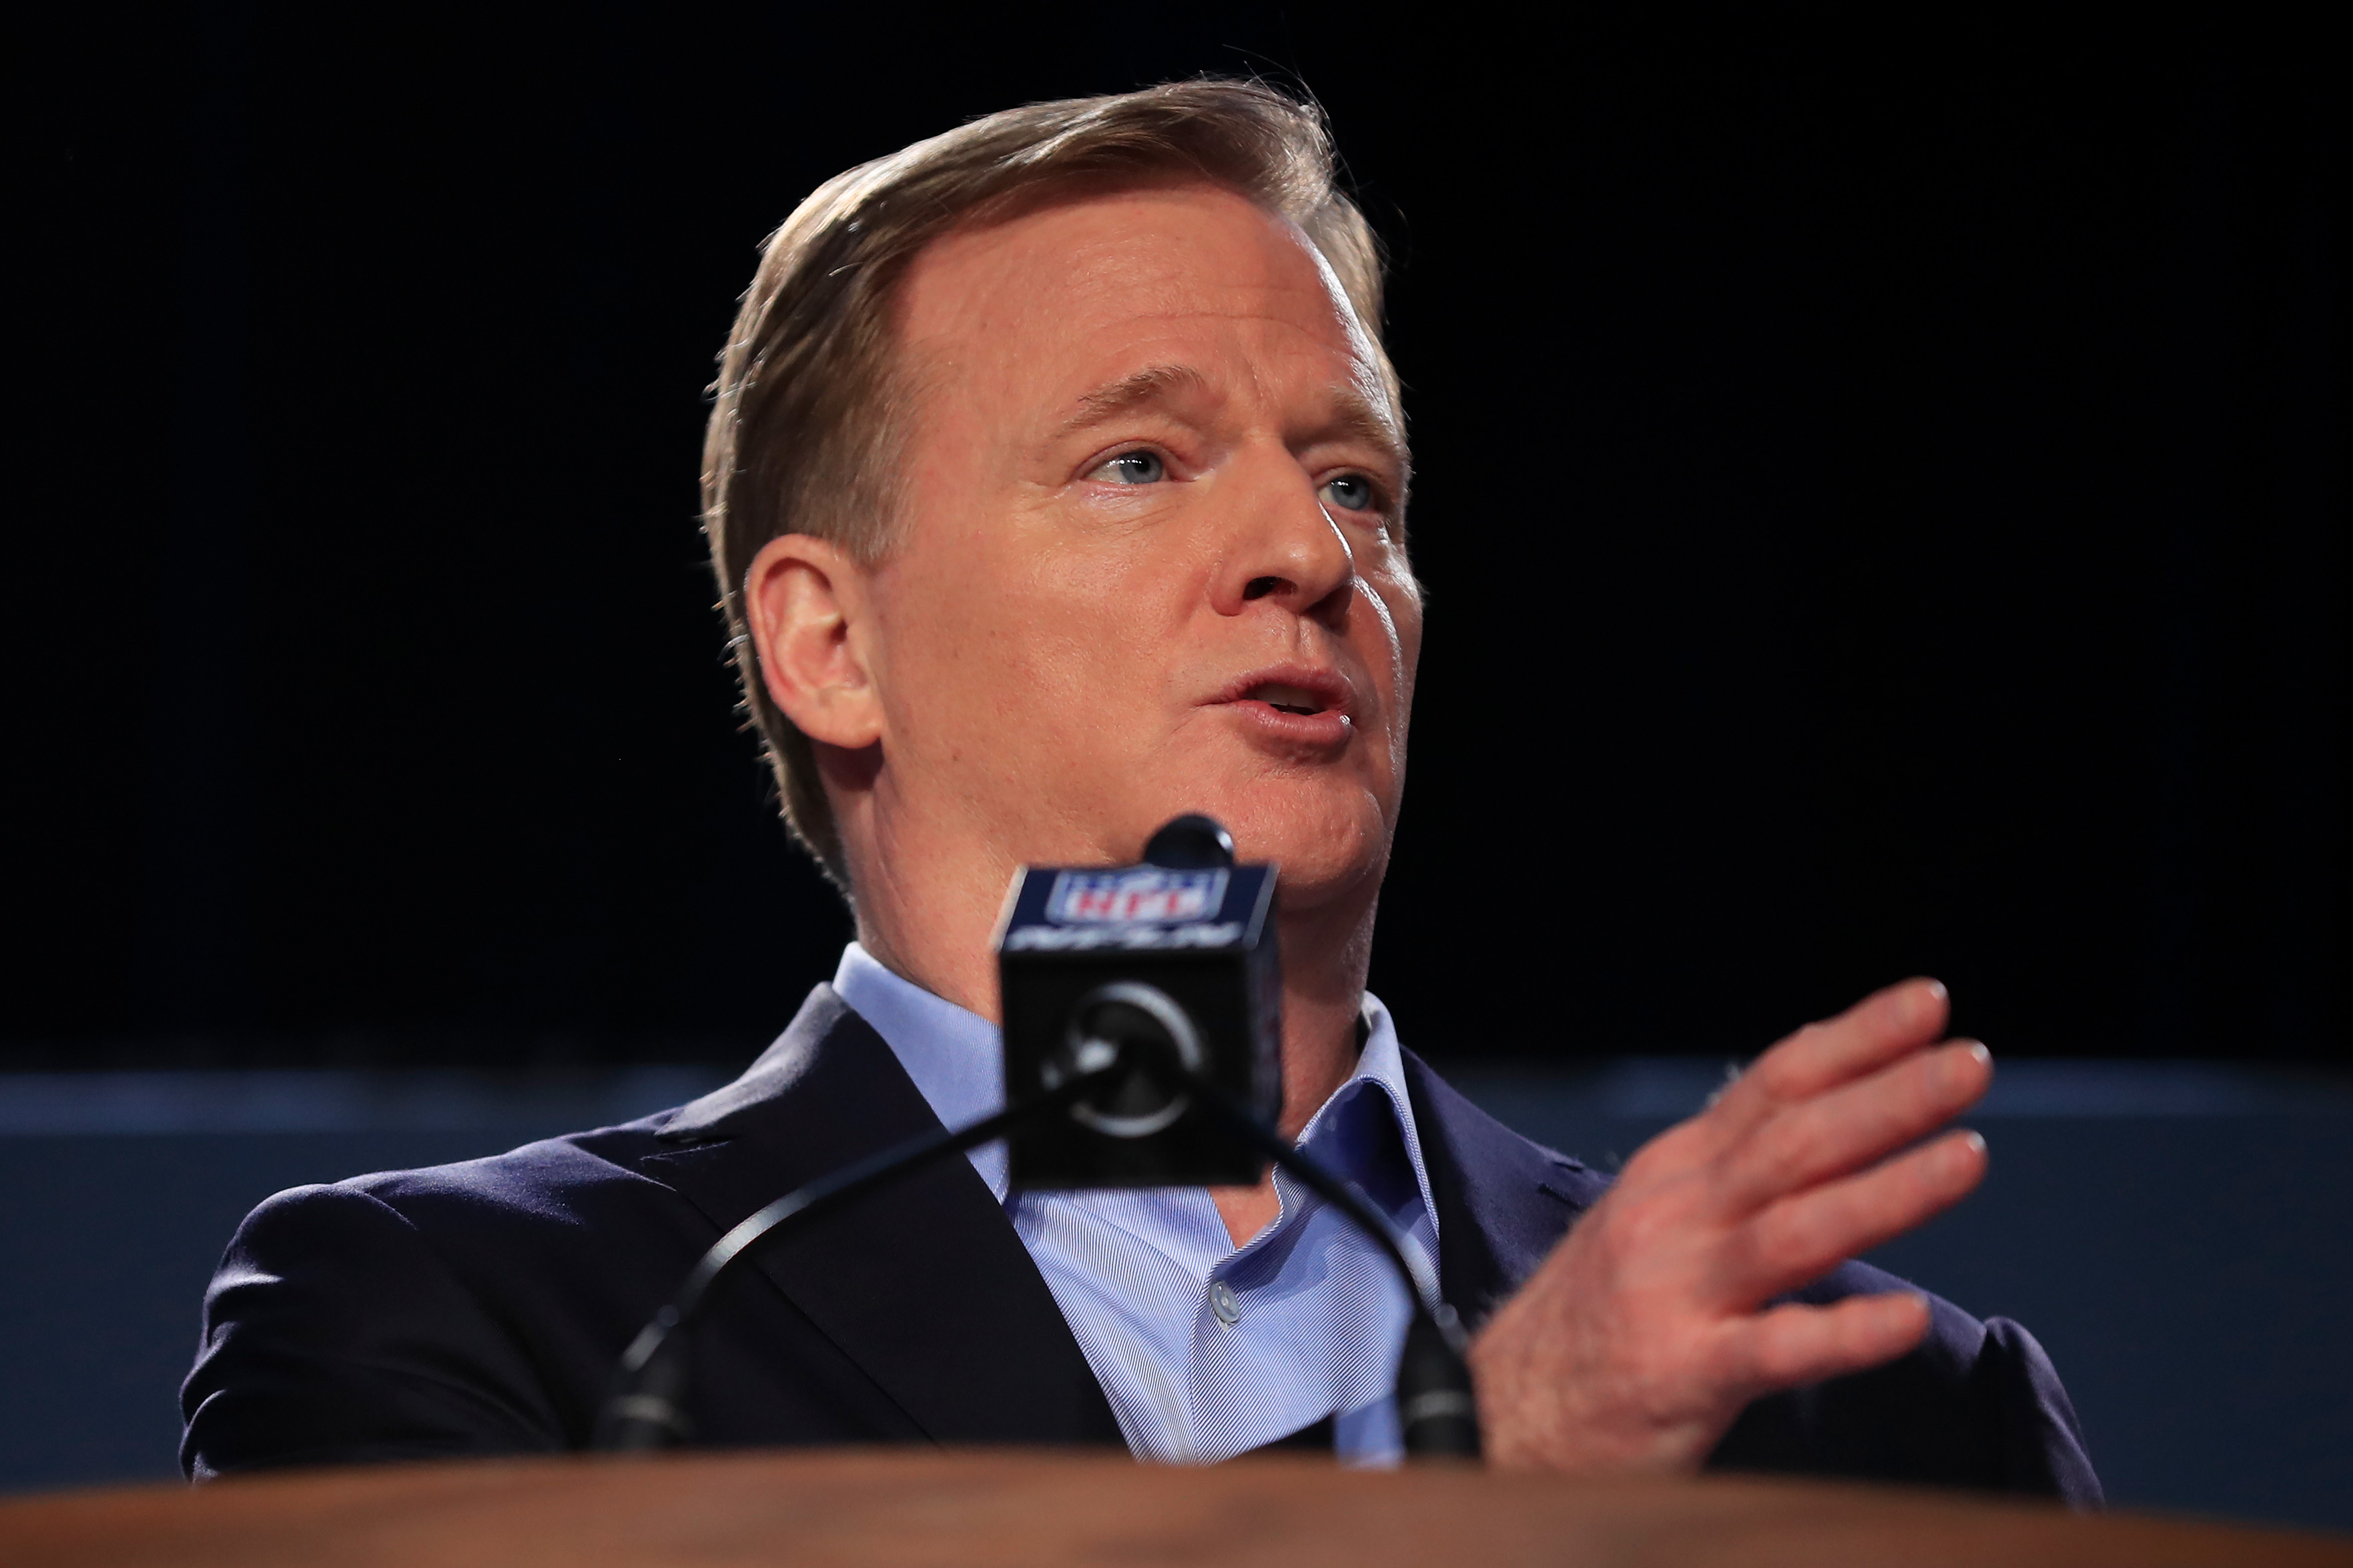 Roger Goodell talking to the media at a press event